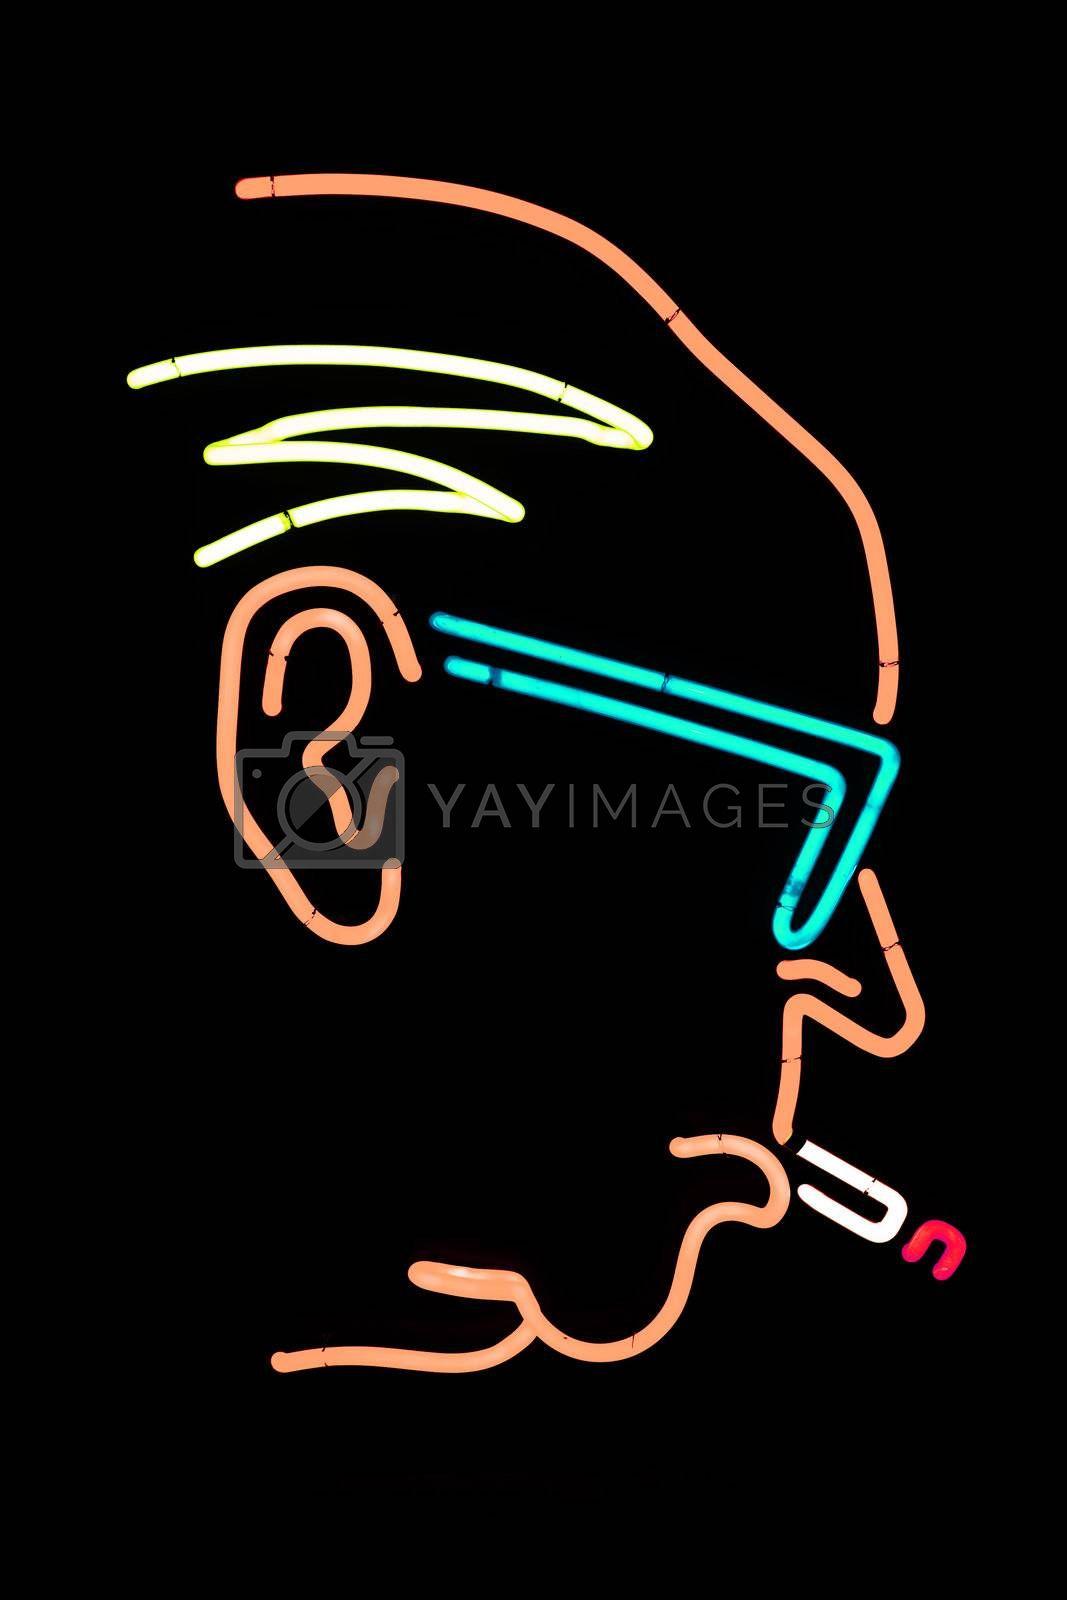 Portrait of Poul Henningsen made in neon light. PH was a Danish architect, film director, inventor, poet and society castigator.